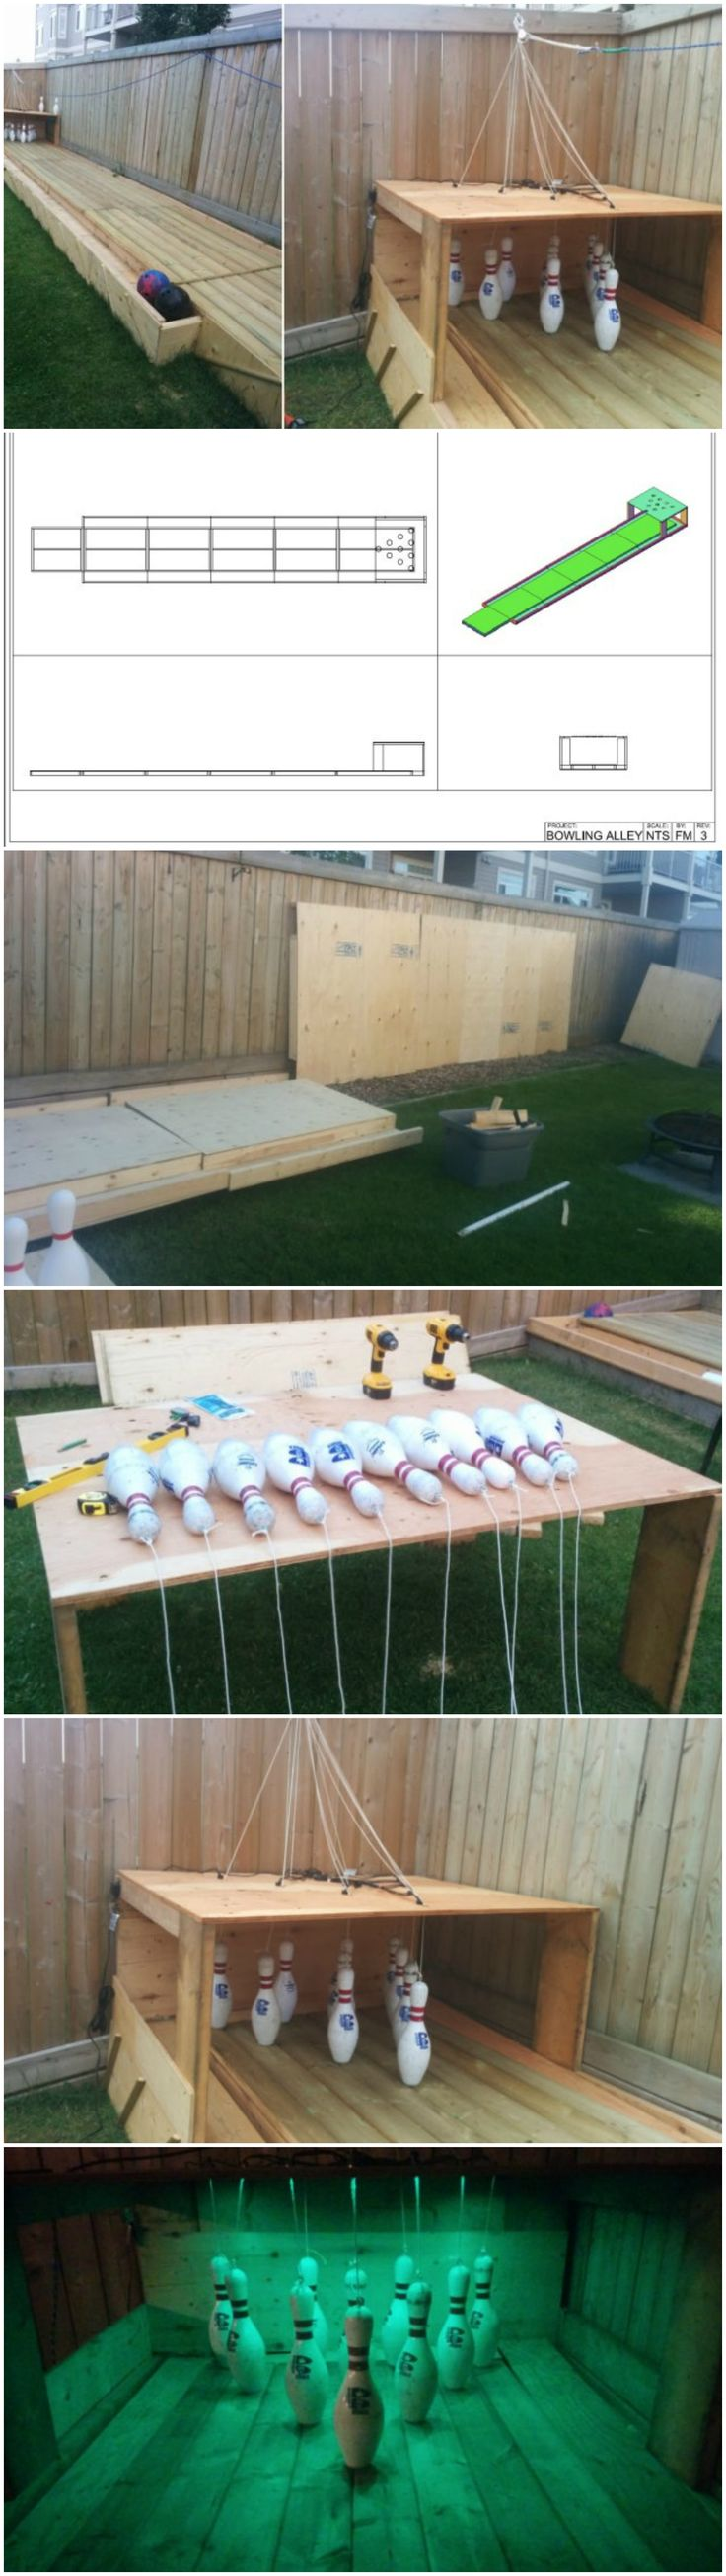 DIY Backyard Bowling Alley  So so cool!